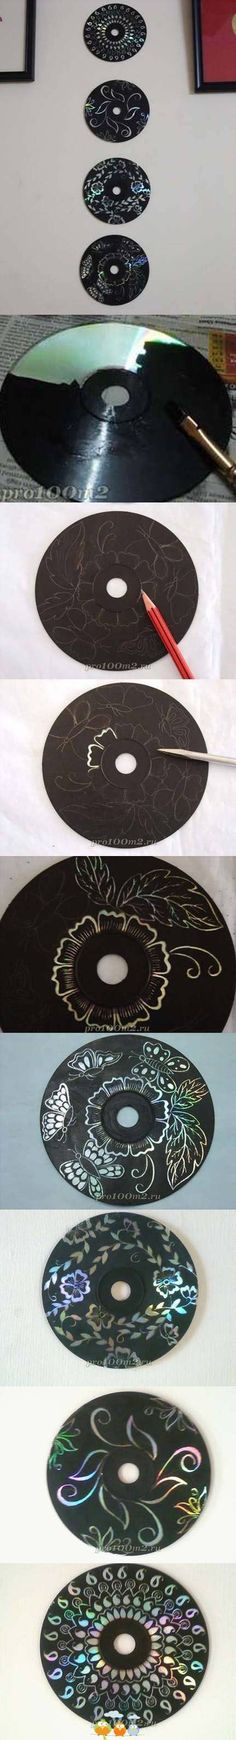 Paint CDs, then scratch - only pics but pretty obvious